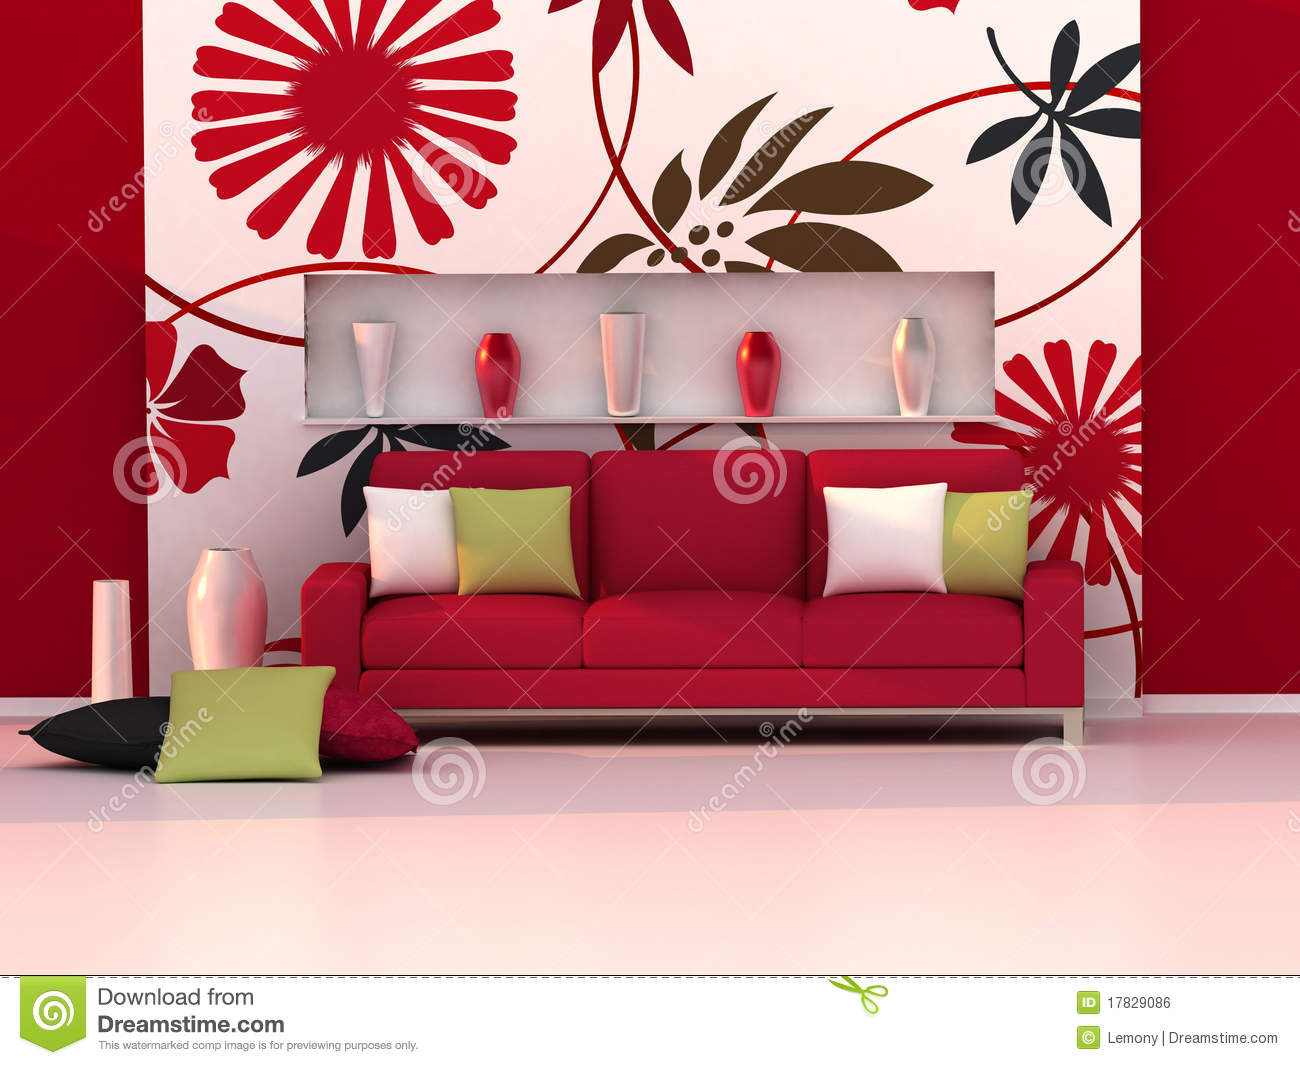 Free Stock Image: Interior of the modern room, floral wall, red sofa | 1300 x 1065 · 136 kB · jpeg